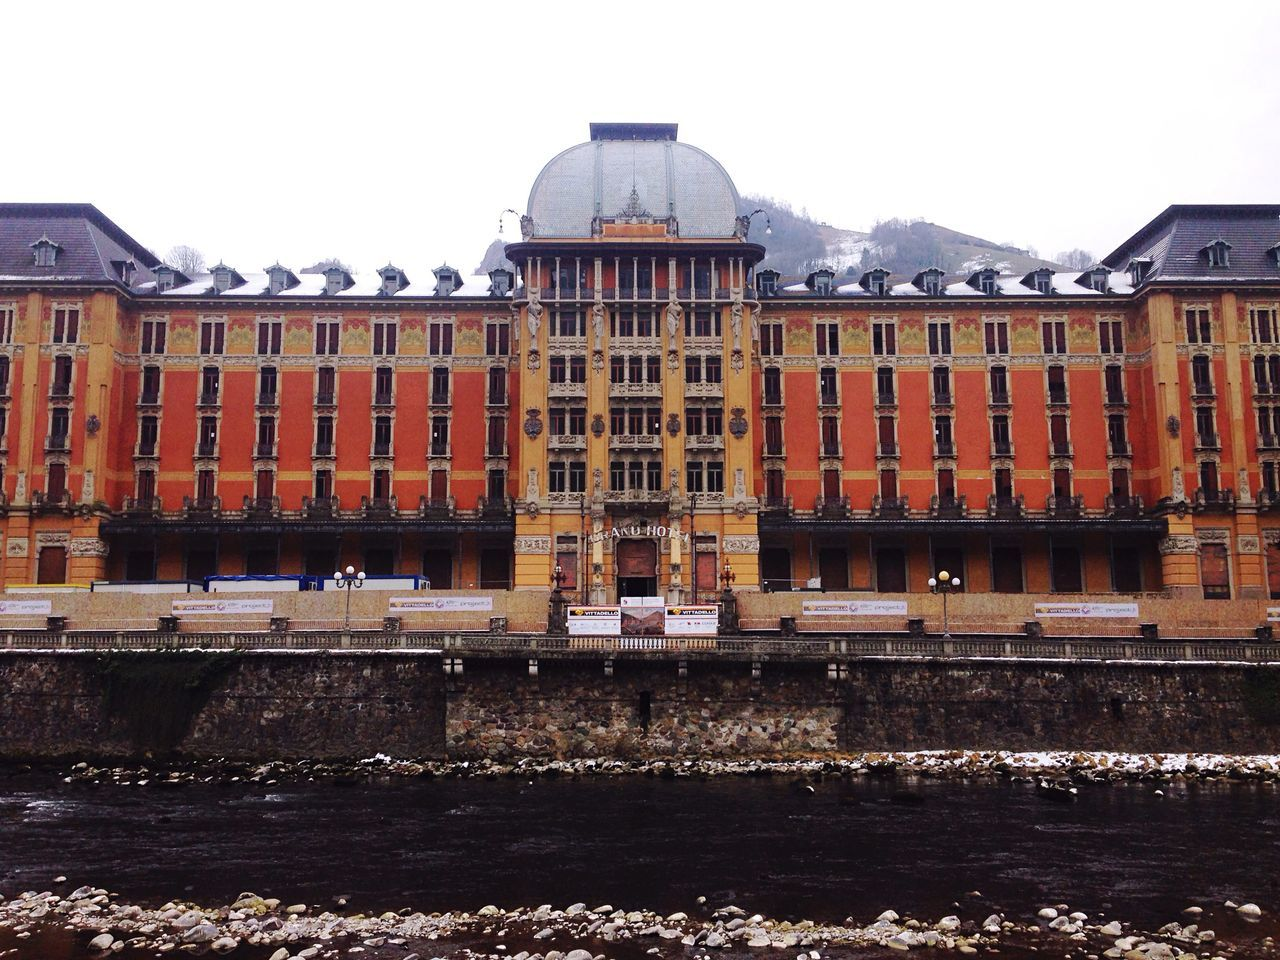 Architecture Building Exterior Built Structure City Outdoors No People Day Sky Water San Pellegrino Grand Hotel Abandoned Buildings